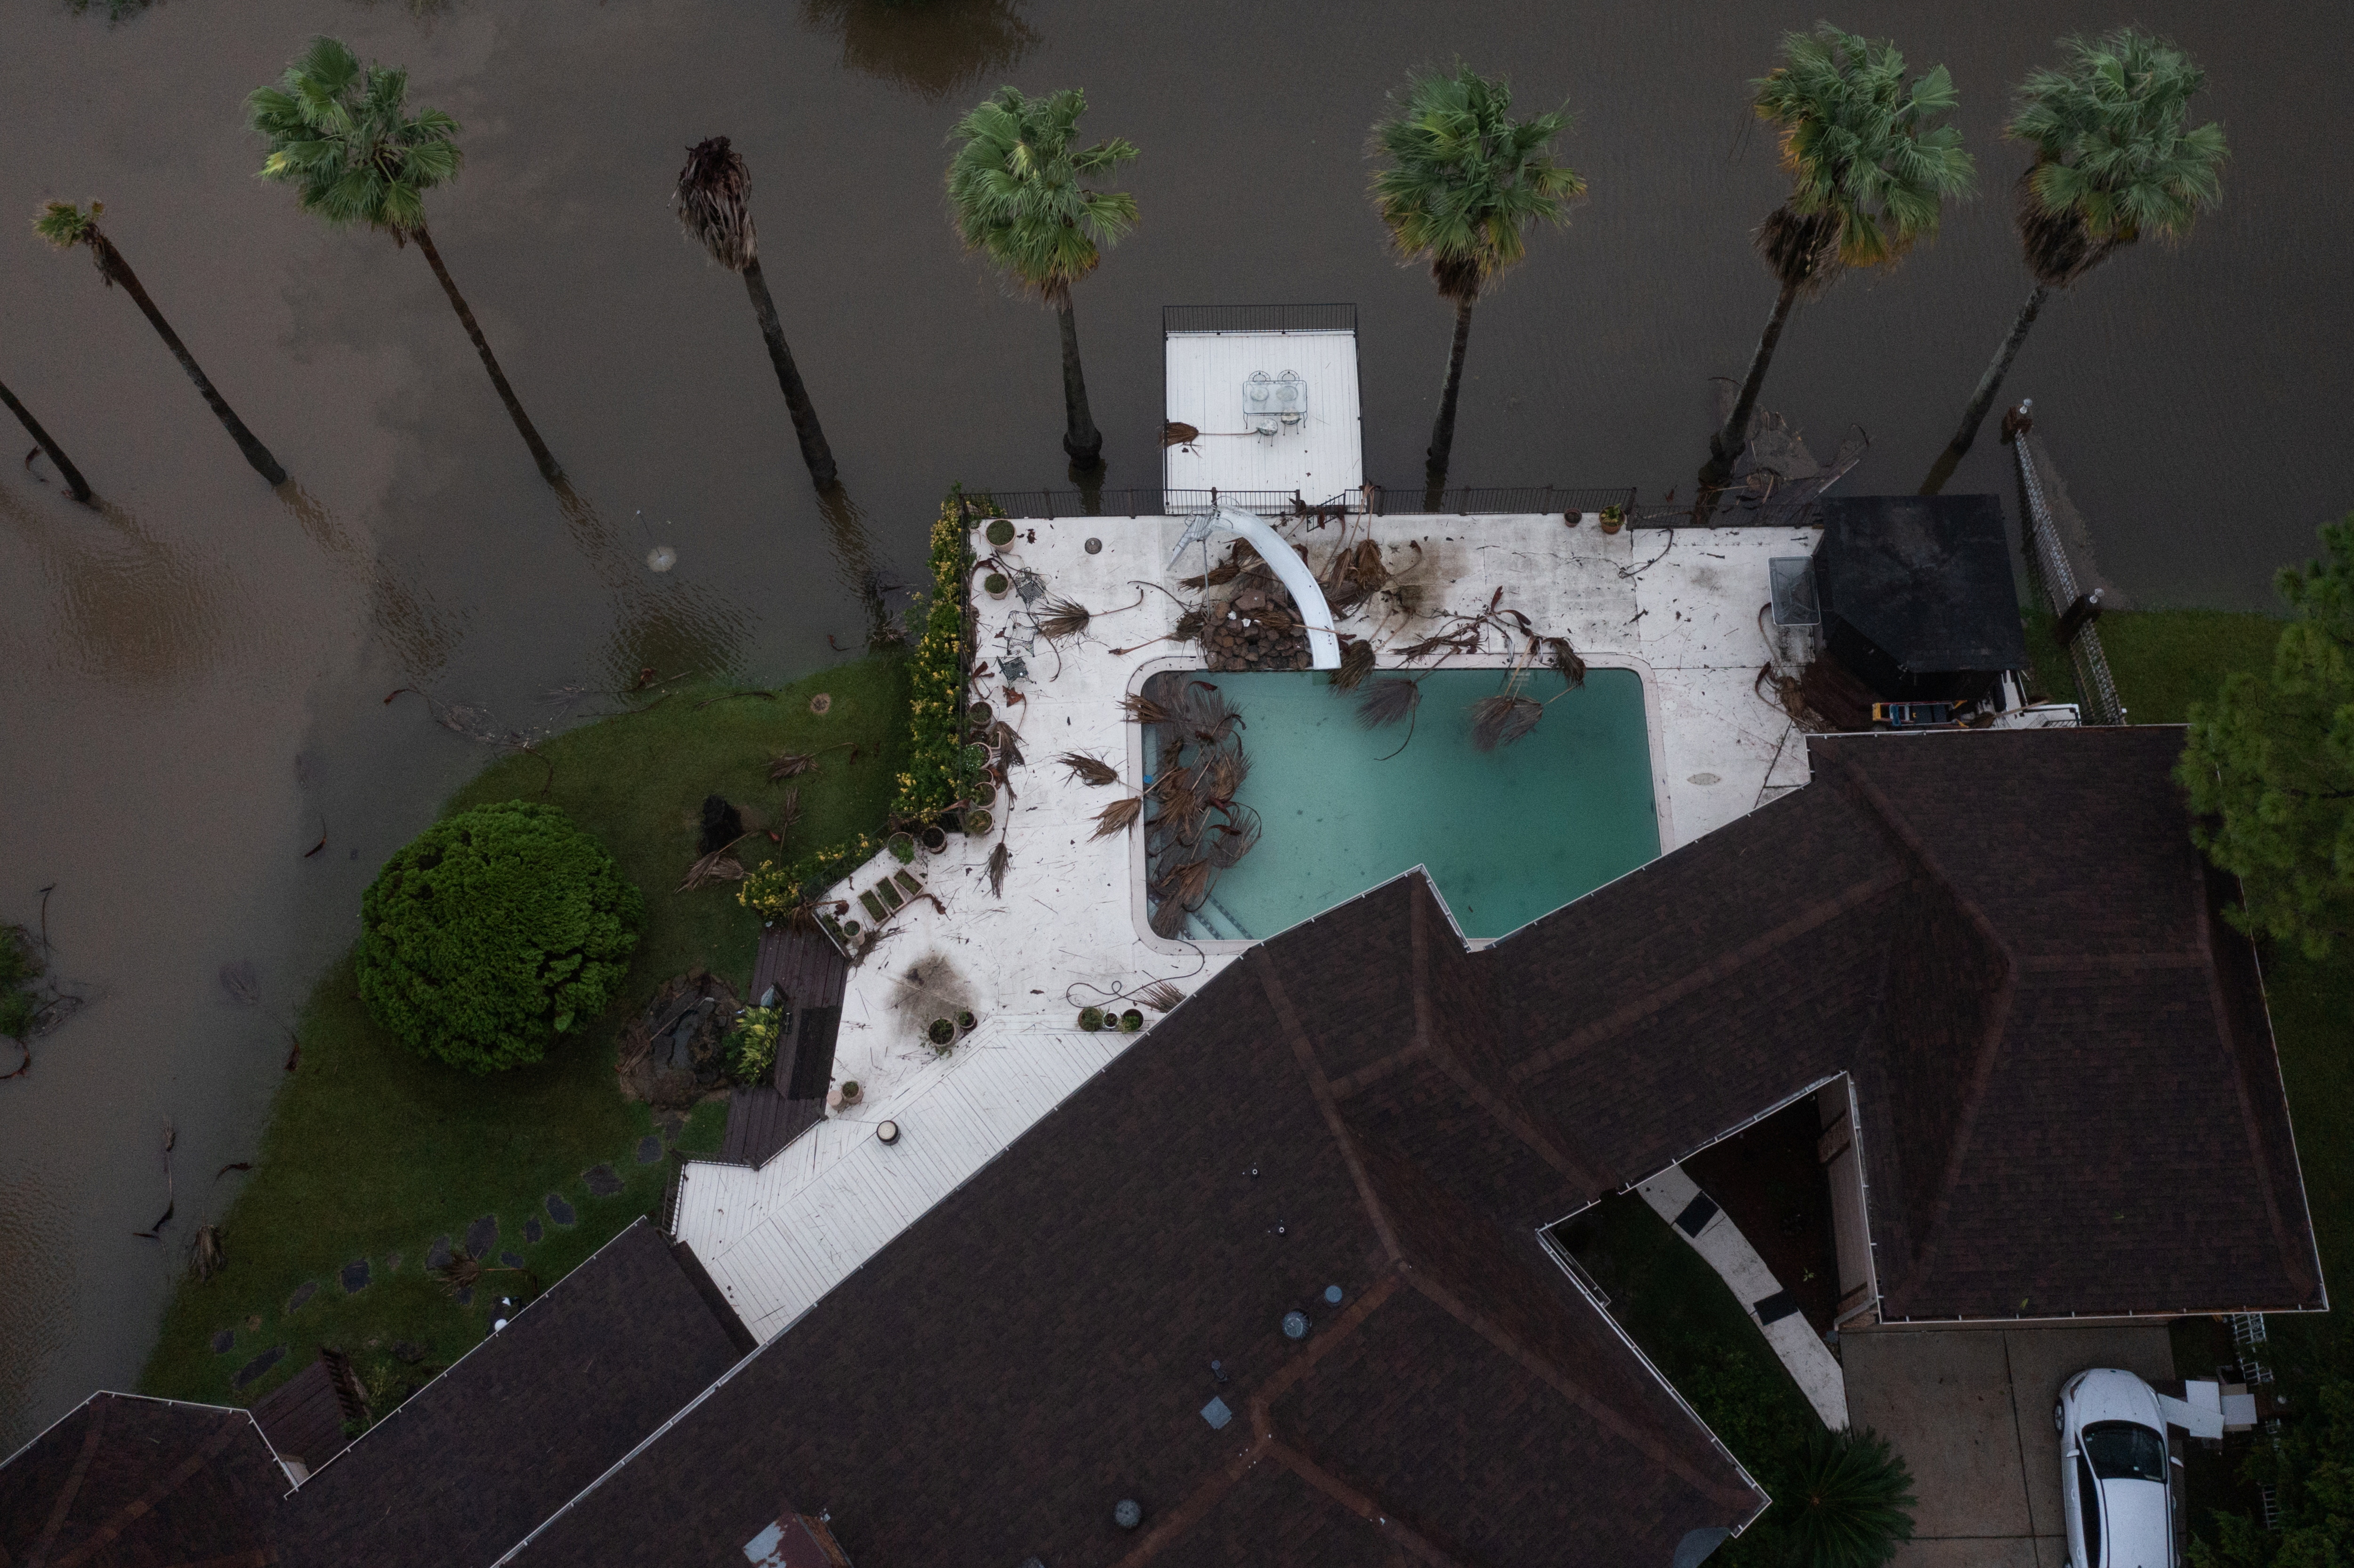 Debris lies in the pool of a home in the aftermath of Hurricane Nicholas in League City, Texas, U.S., September 14, 2021. REUTERS/Adrees Latif